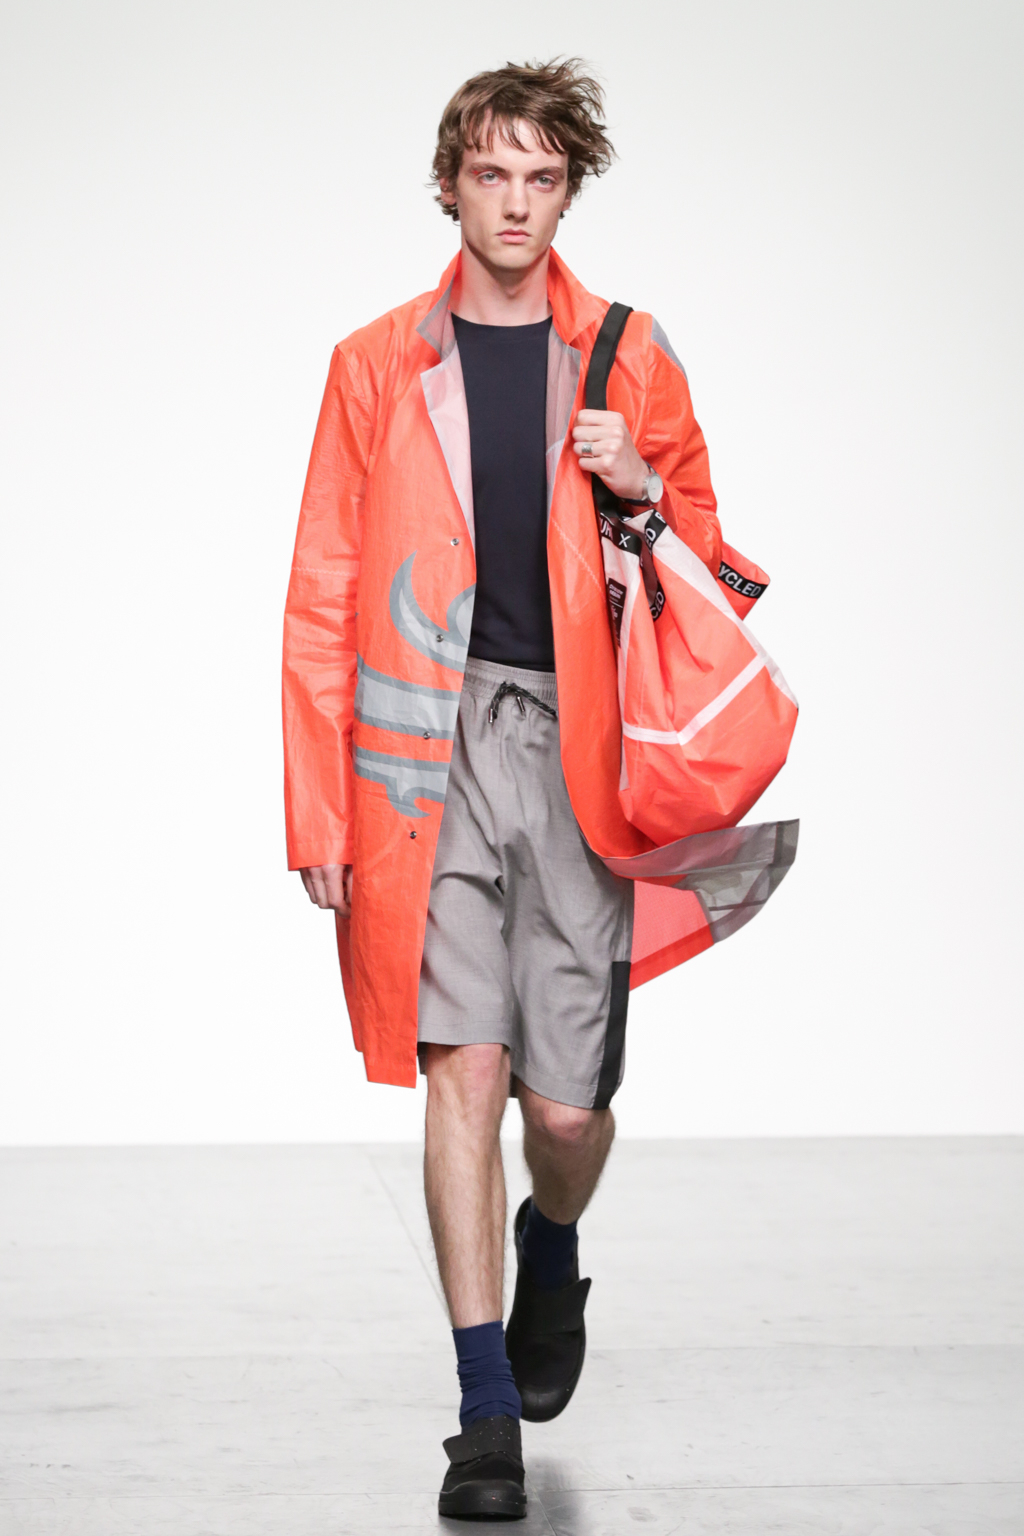 LFWM SS18 - Christopher Raeburn - Kimberley Archer - The Upcoming-5